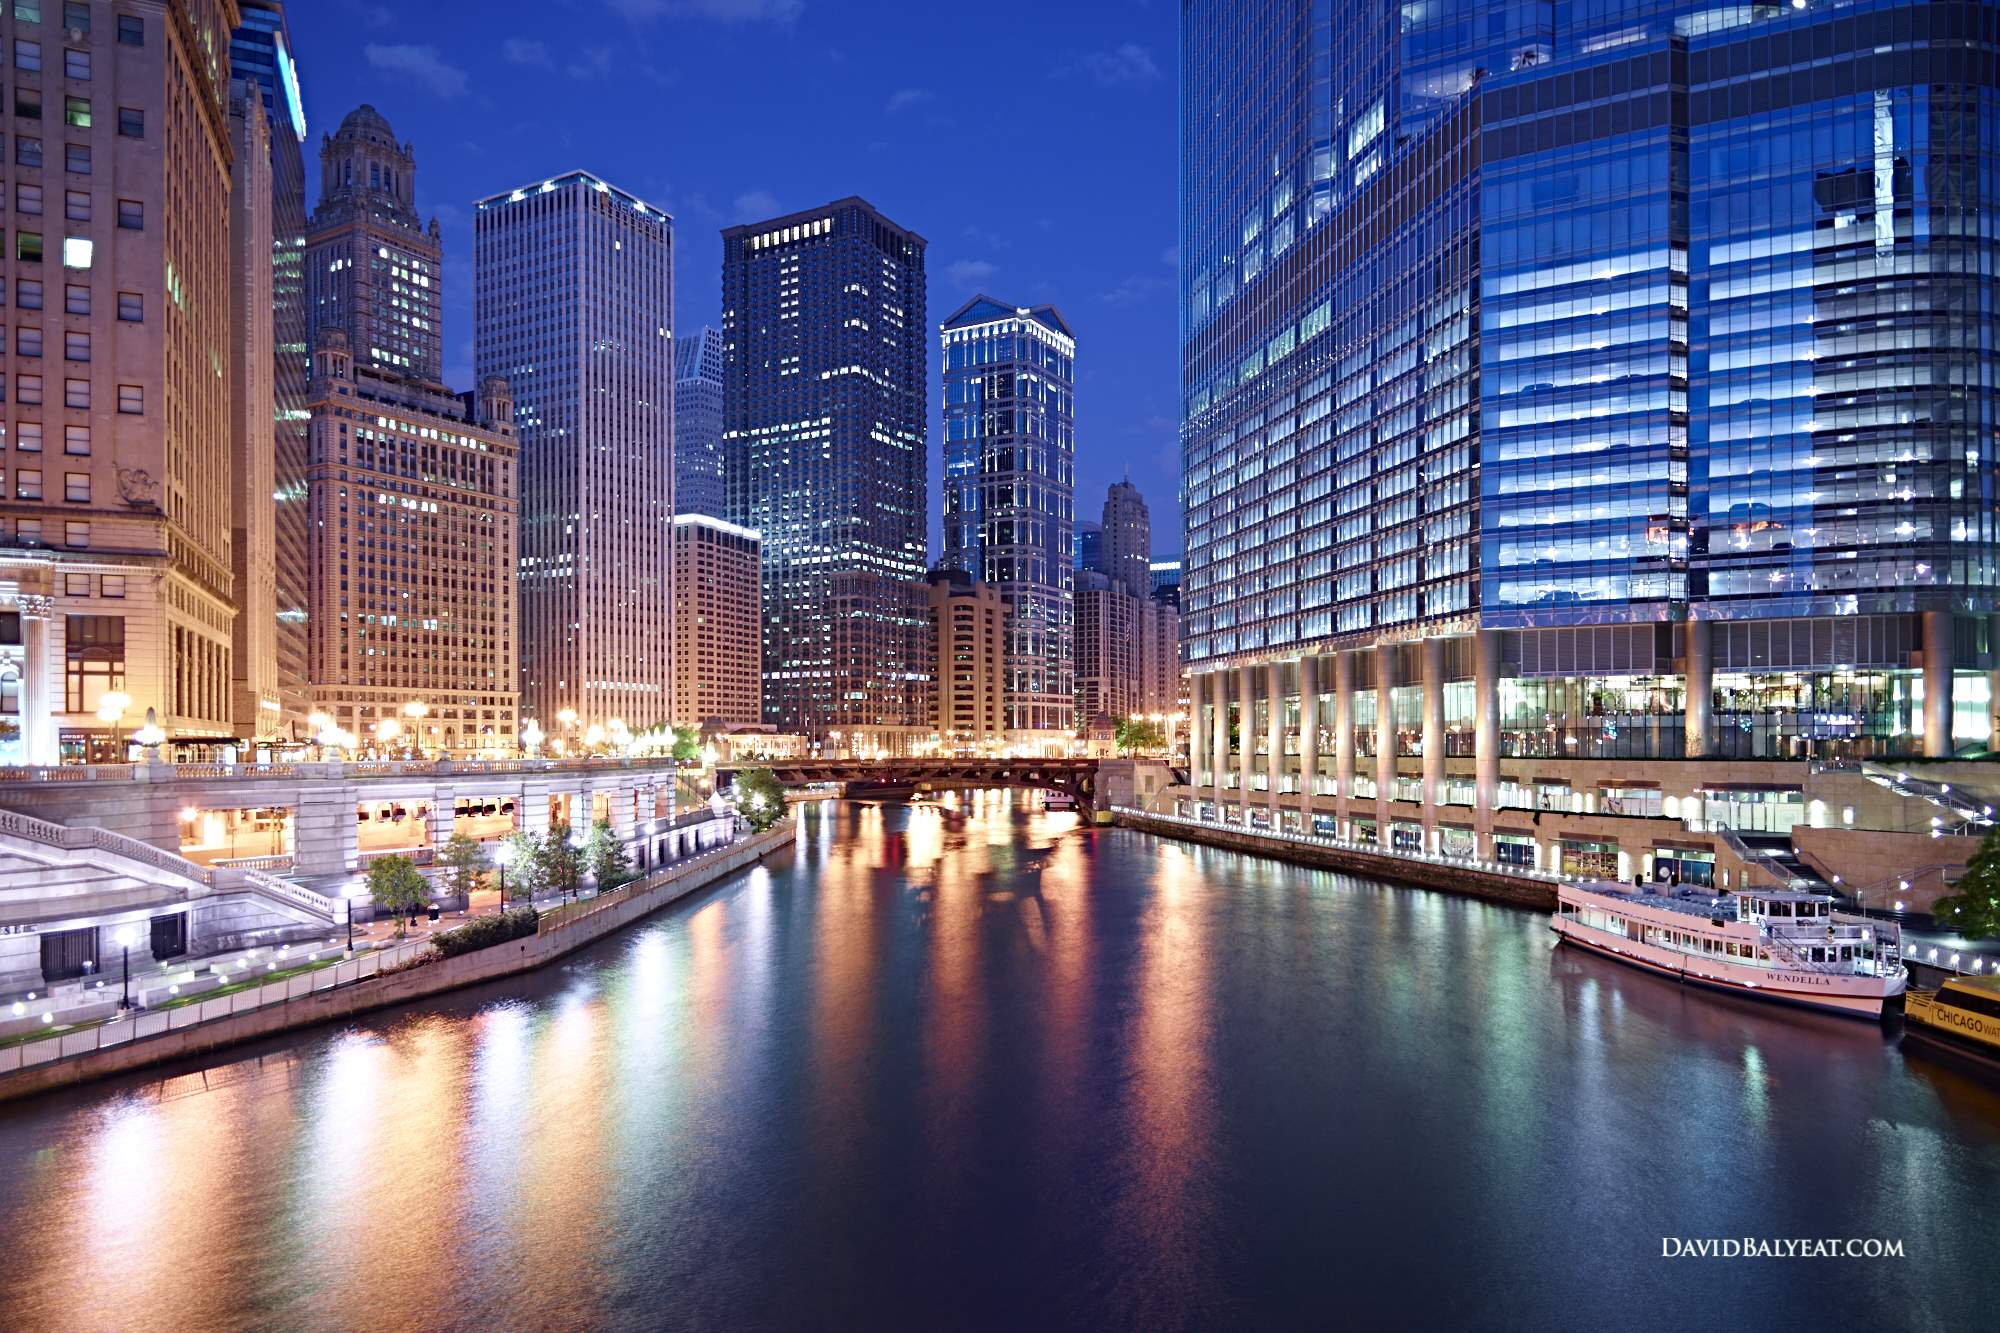 Chicago River skyline dawn reflections high-definition HD professional landscape photography